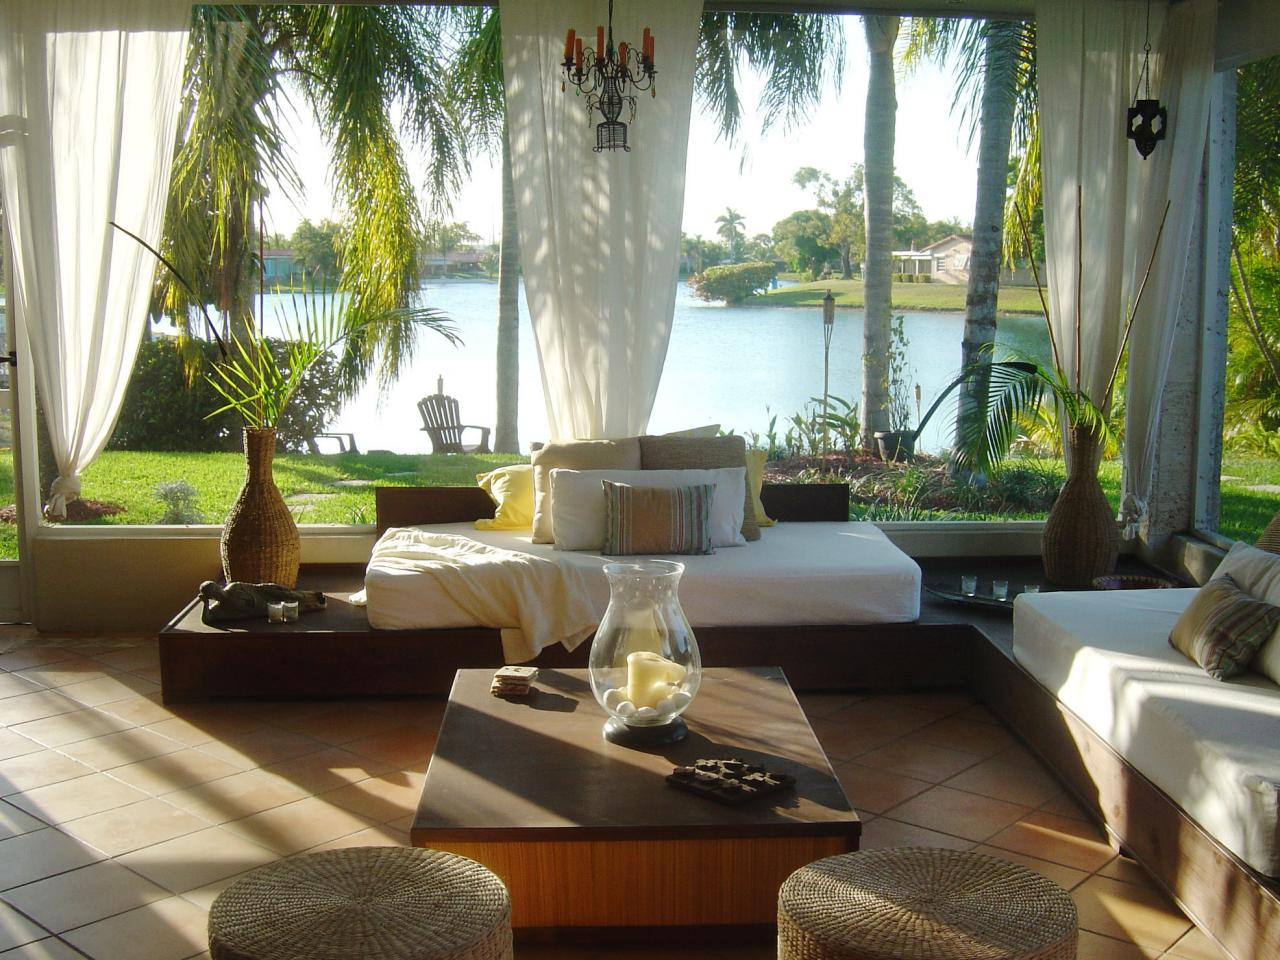 Beach inspired sunrooms decorating and design ideas for interior rooms hgtv - Amazing image of sunroom interior design and decoration ...